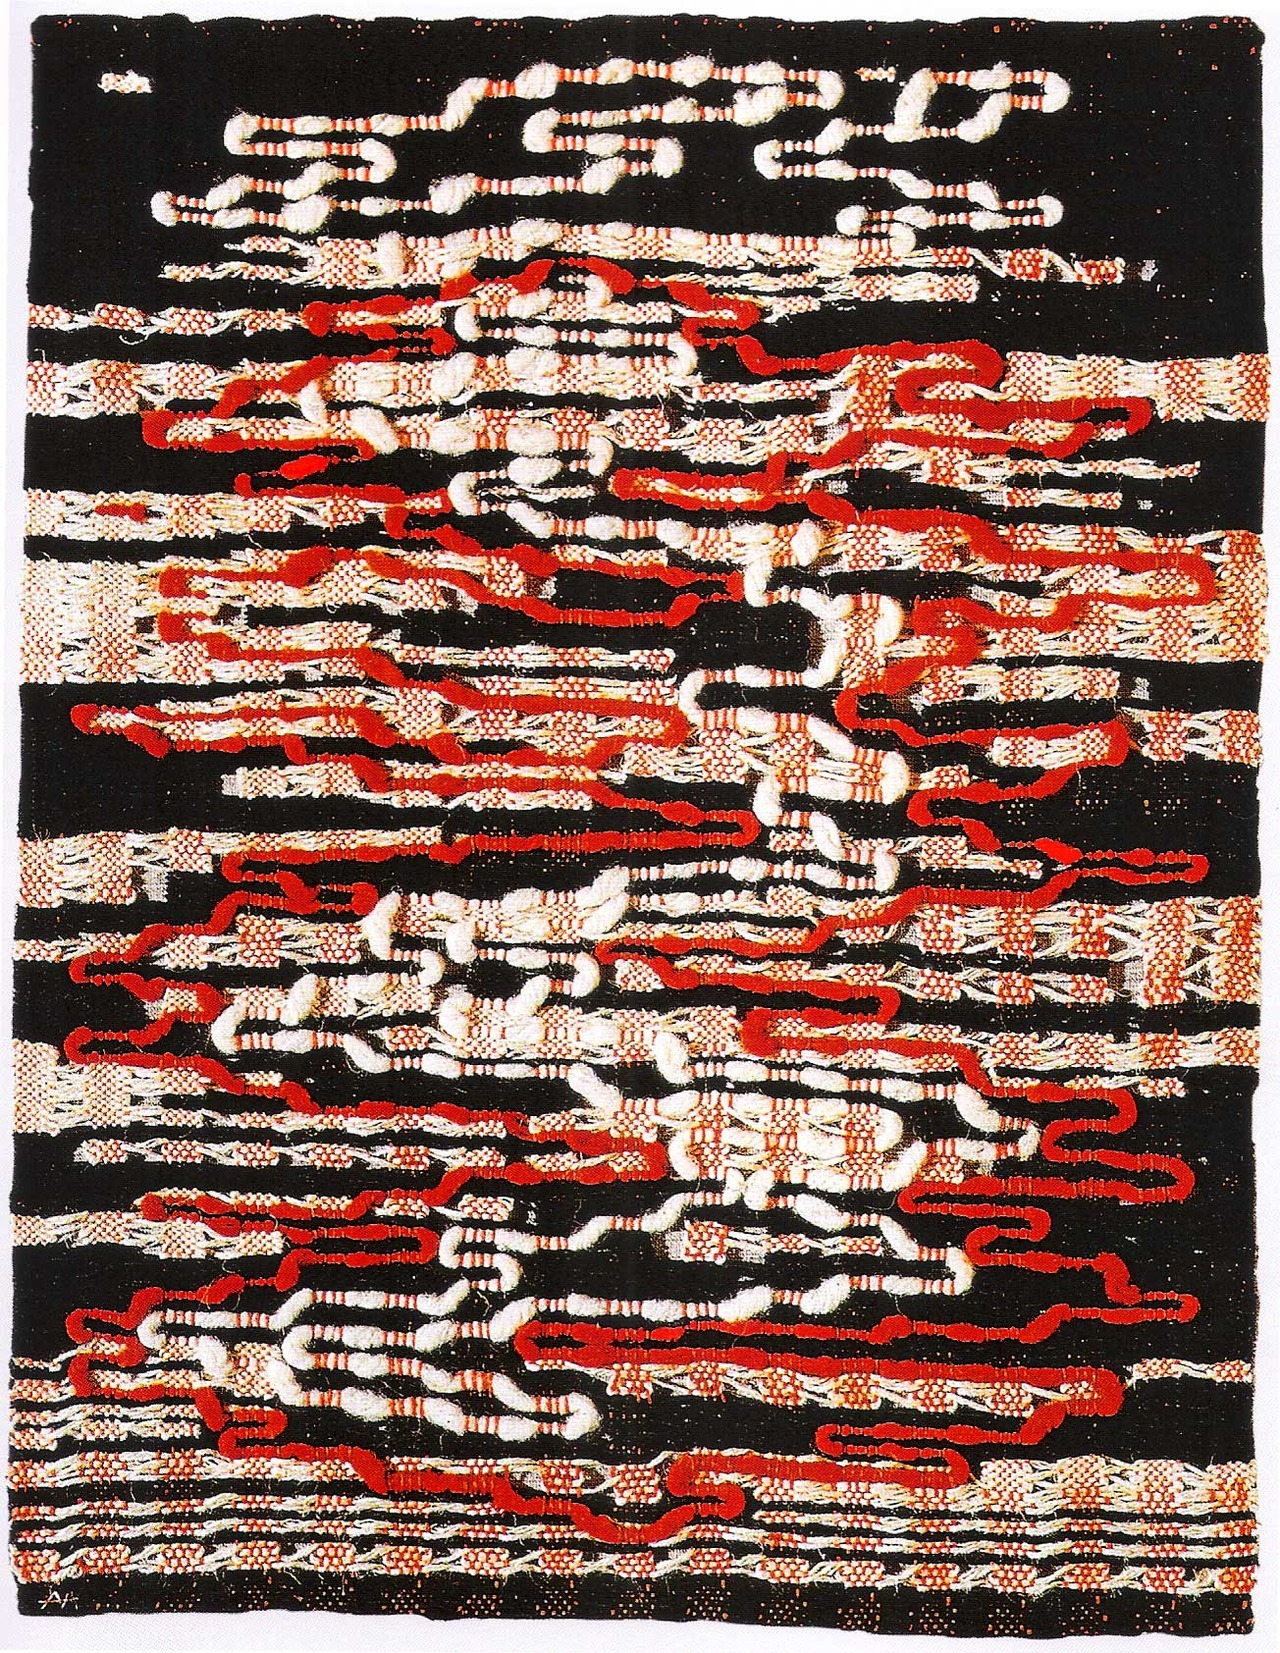 ANNI ALBERS UNDER WAY, cotton, linen, and wool, 1963 (©2007 The Josef and Anni Albers Foundation/Artists Rights Society (ARS), New York)